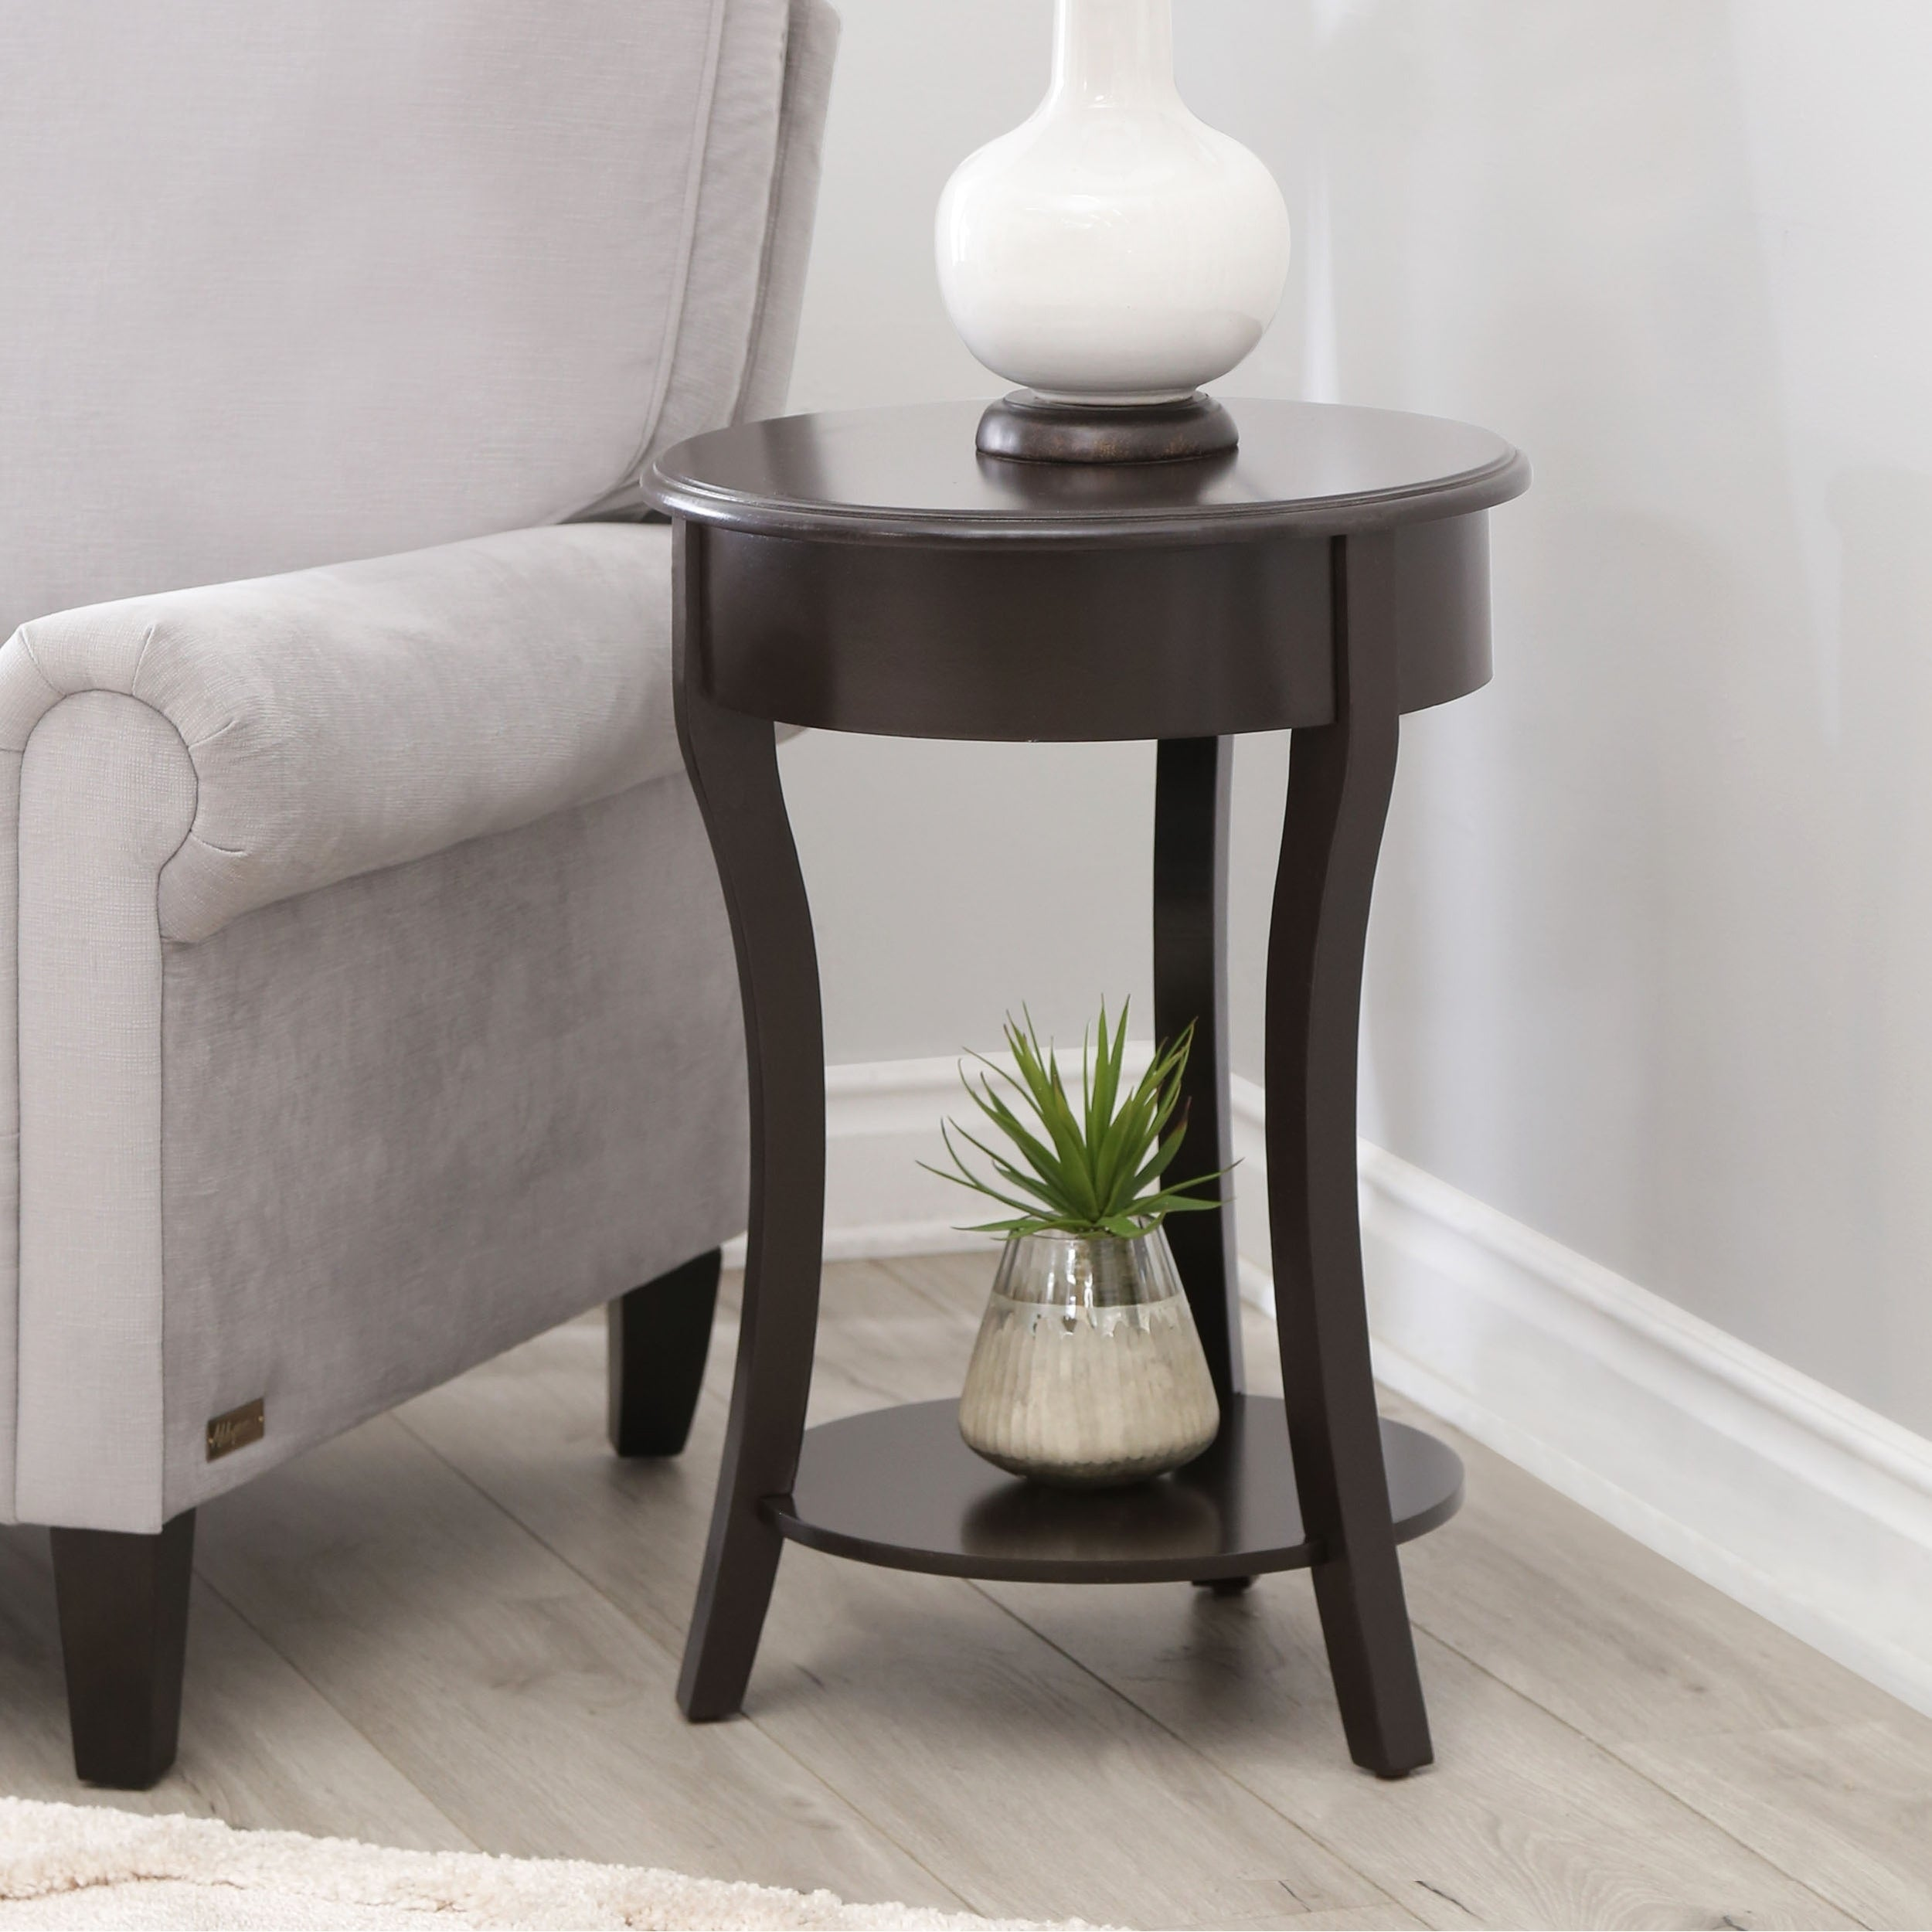 Abbyson Taylor Espresso Wood Round End Table